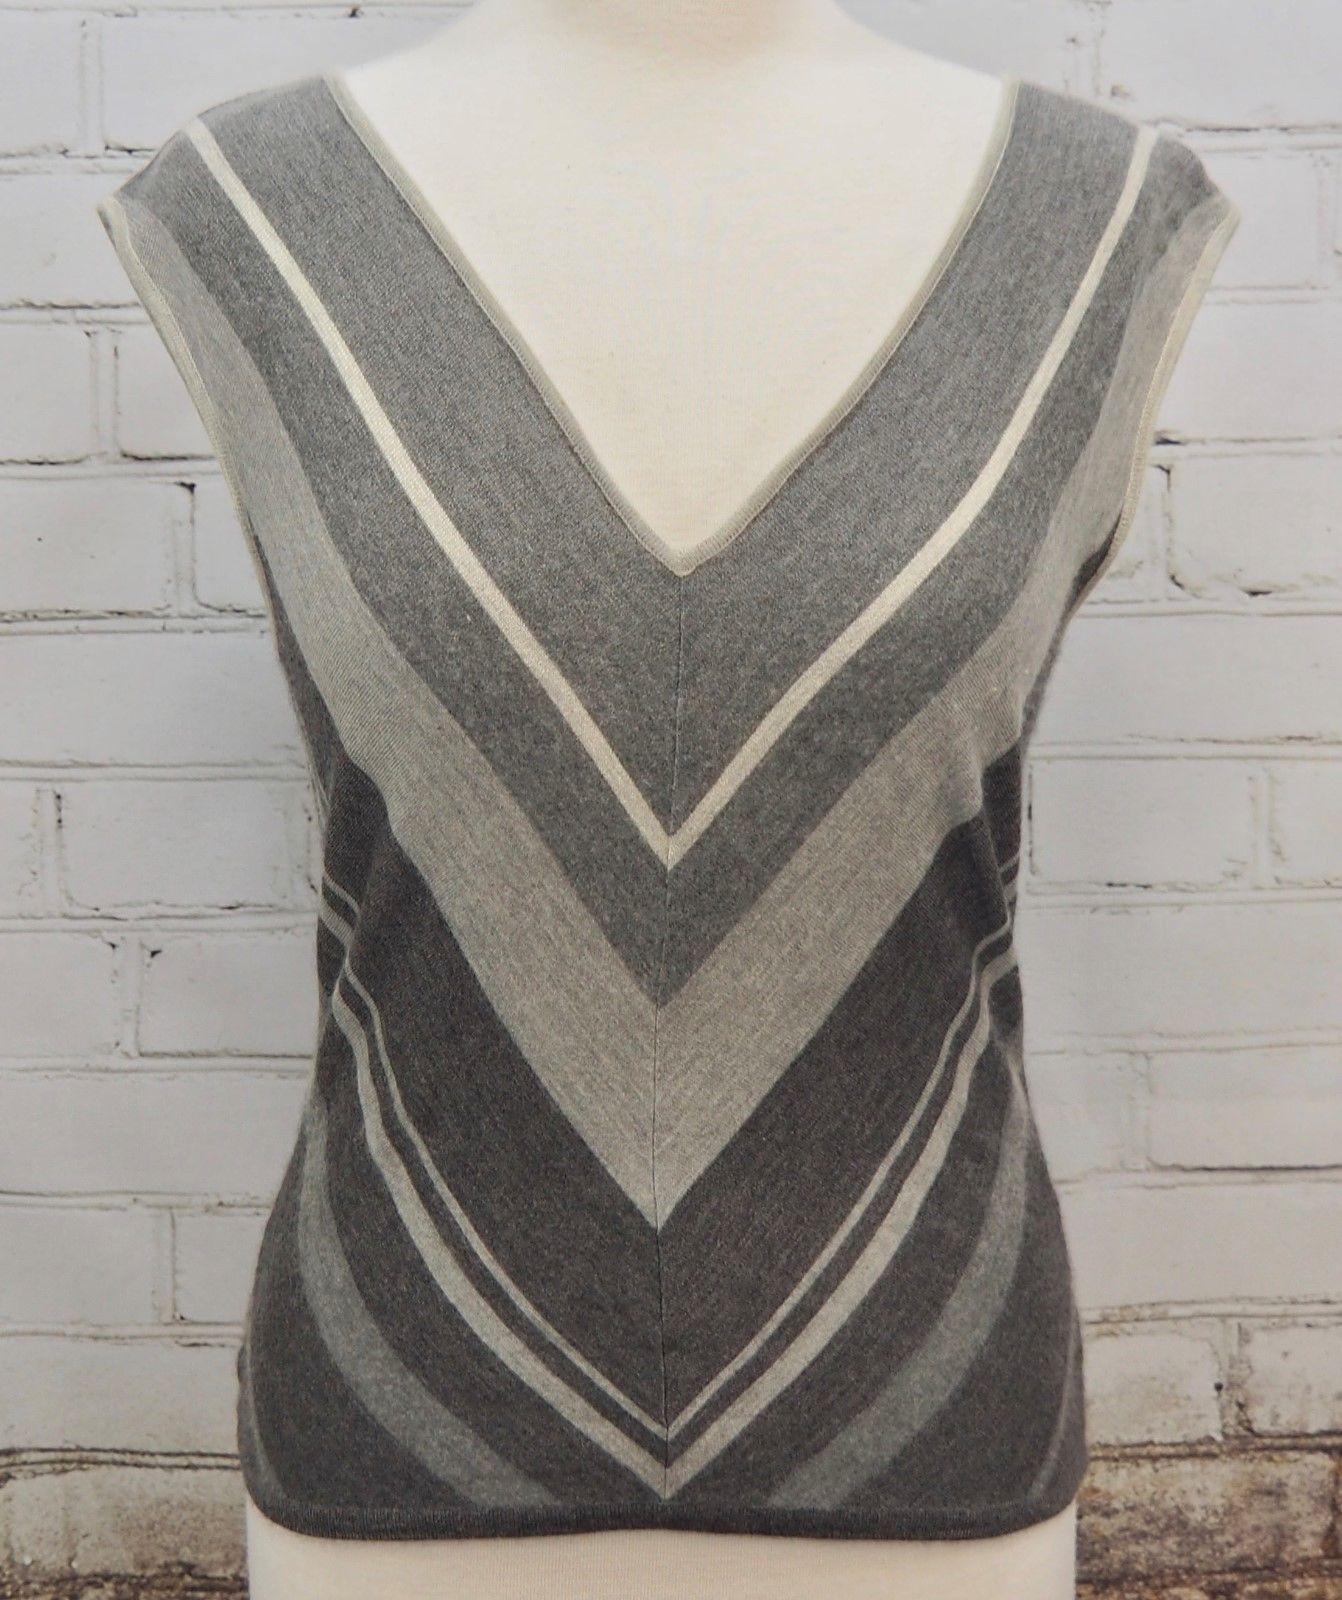 eb0fbbaacfe07f 57. 57. Previous. RALPH LAUREN Cashmere Silk Black Label Sleeveless Sweater Vest  Gray Stripes Med